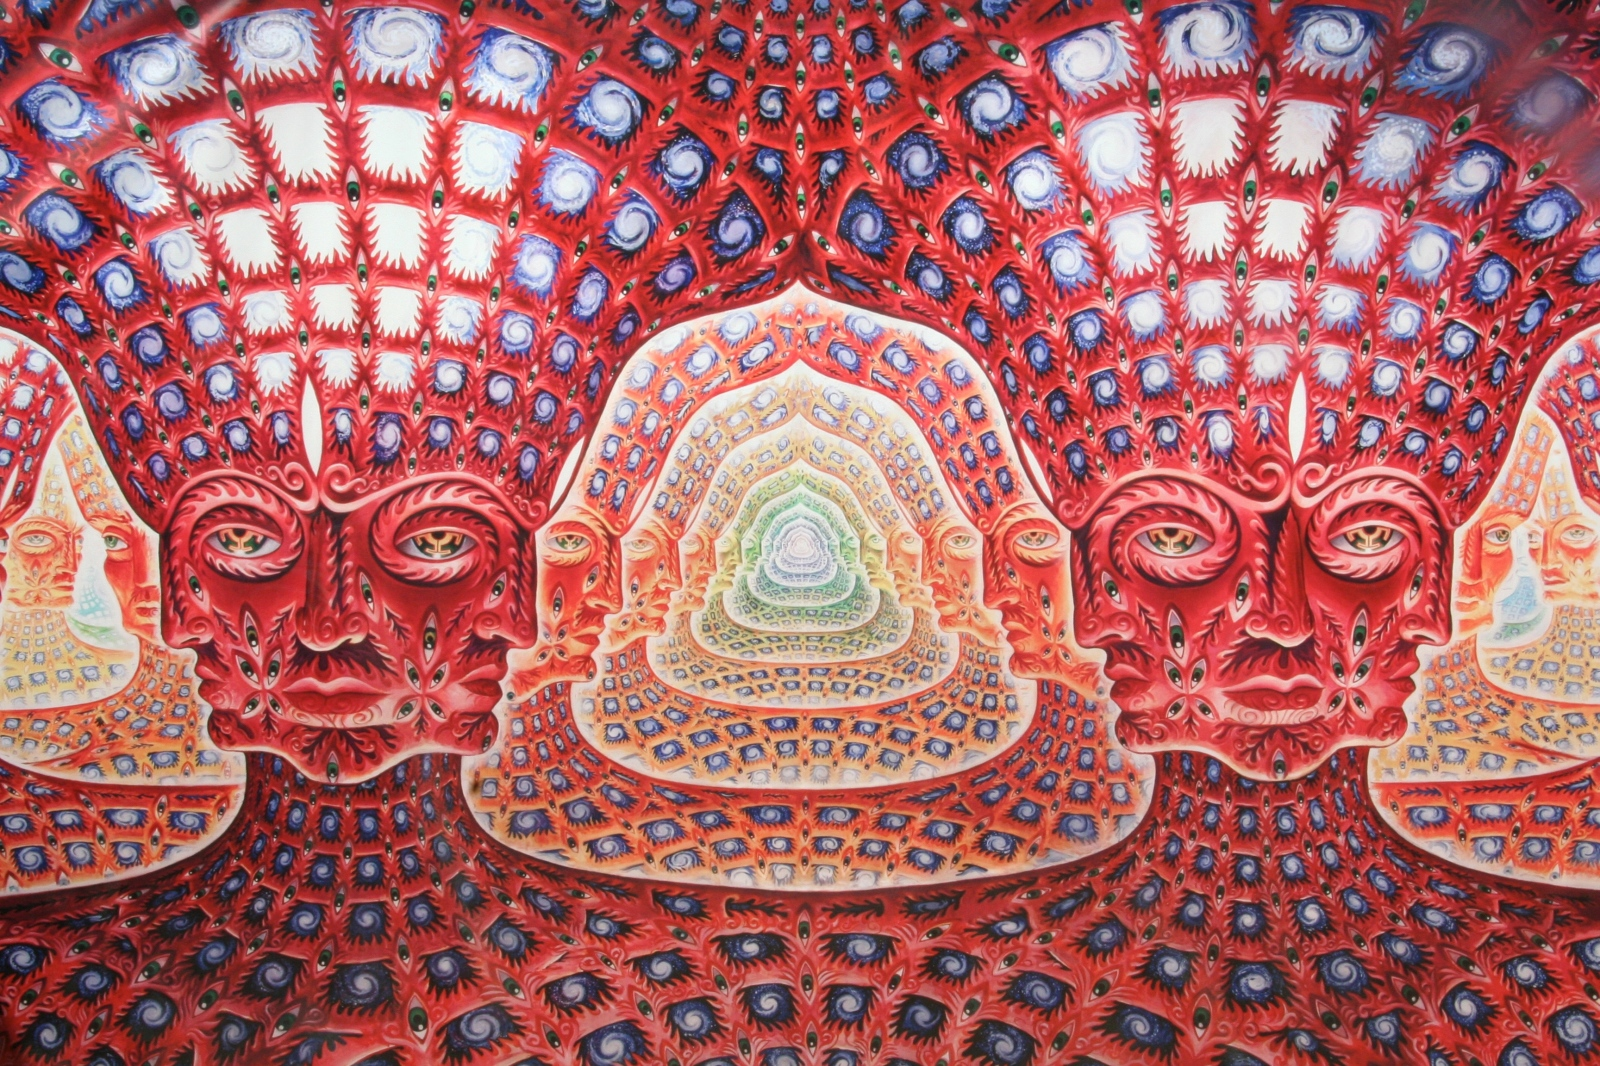 Net of Being by Alex Grey. It's suitably trippy.